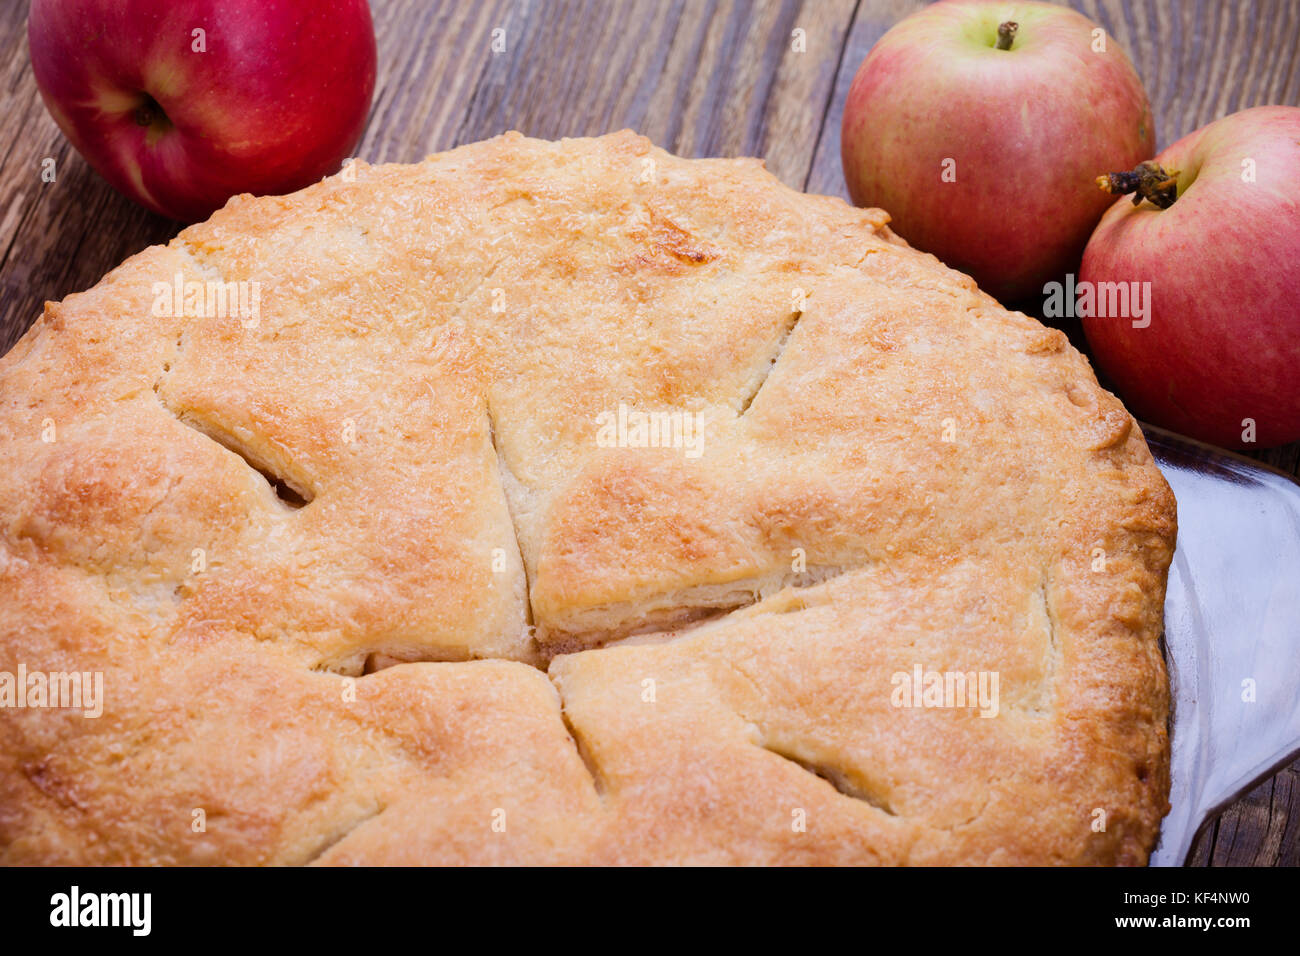 Homemade traditional autumn apple pie  with a flaky pie crust  on rustic wooden table - Stock Image